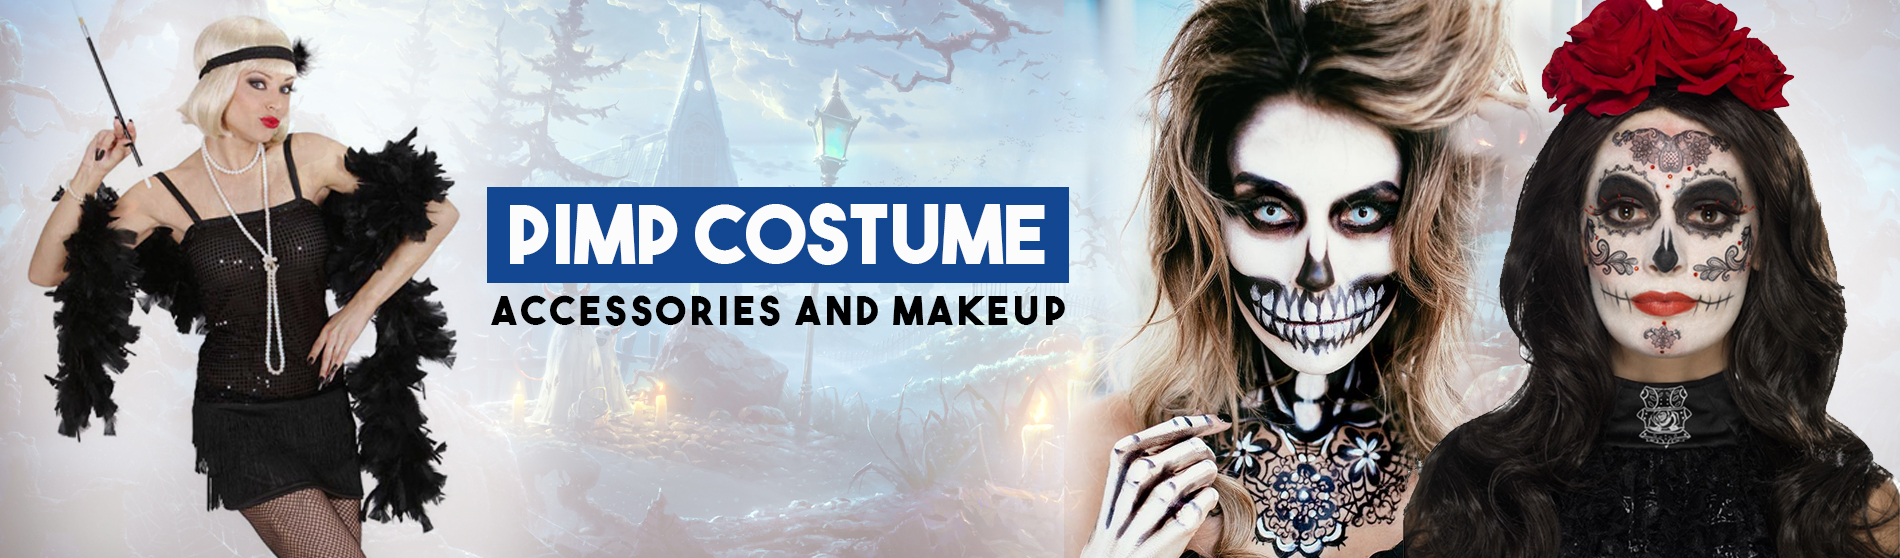 Pimp Costume Accessories and Makeup